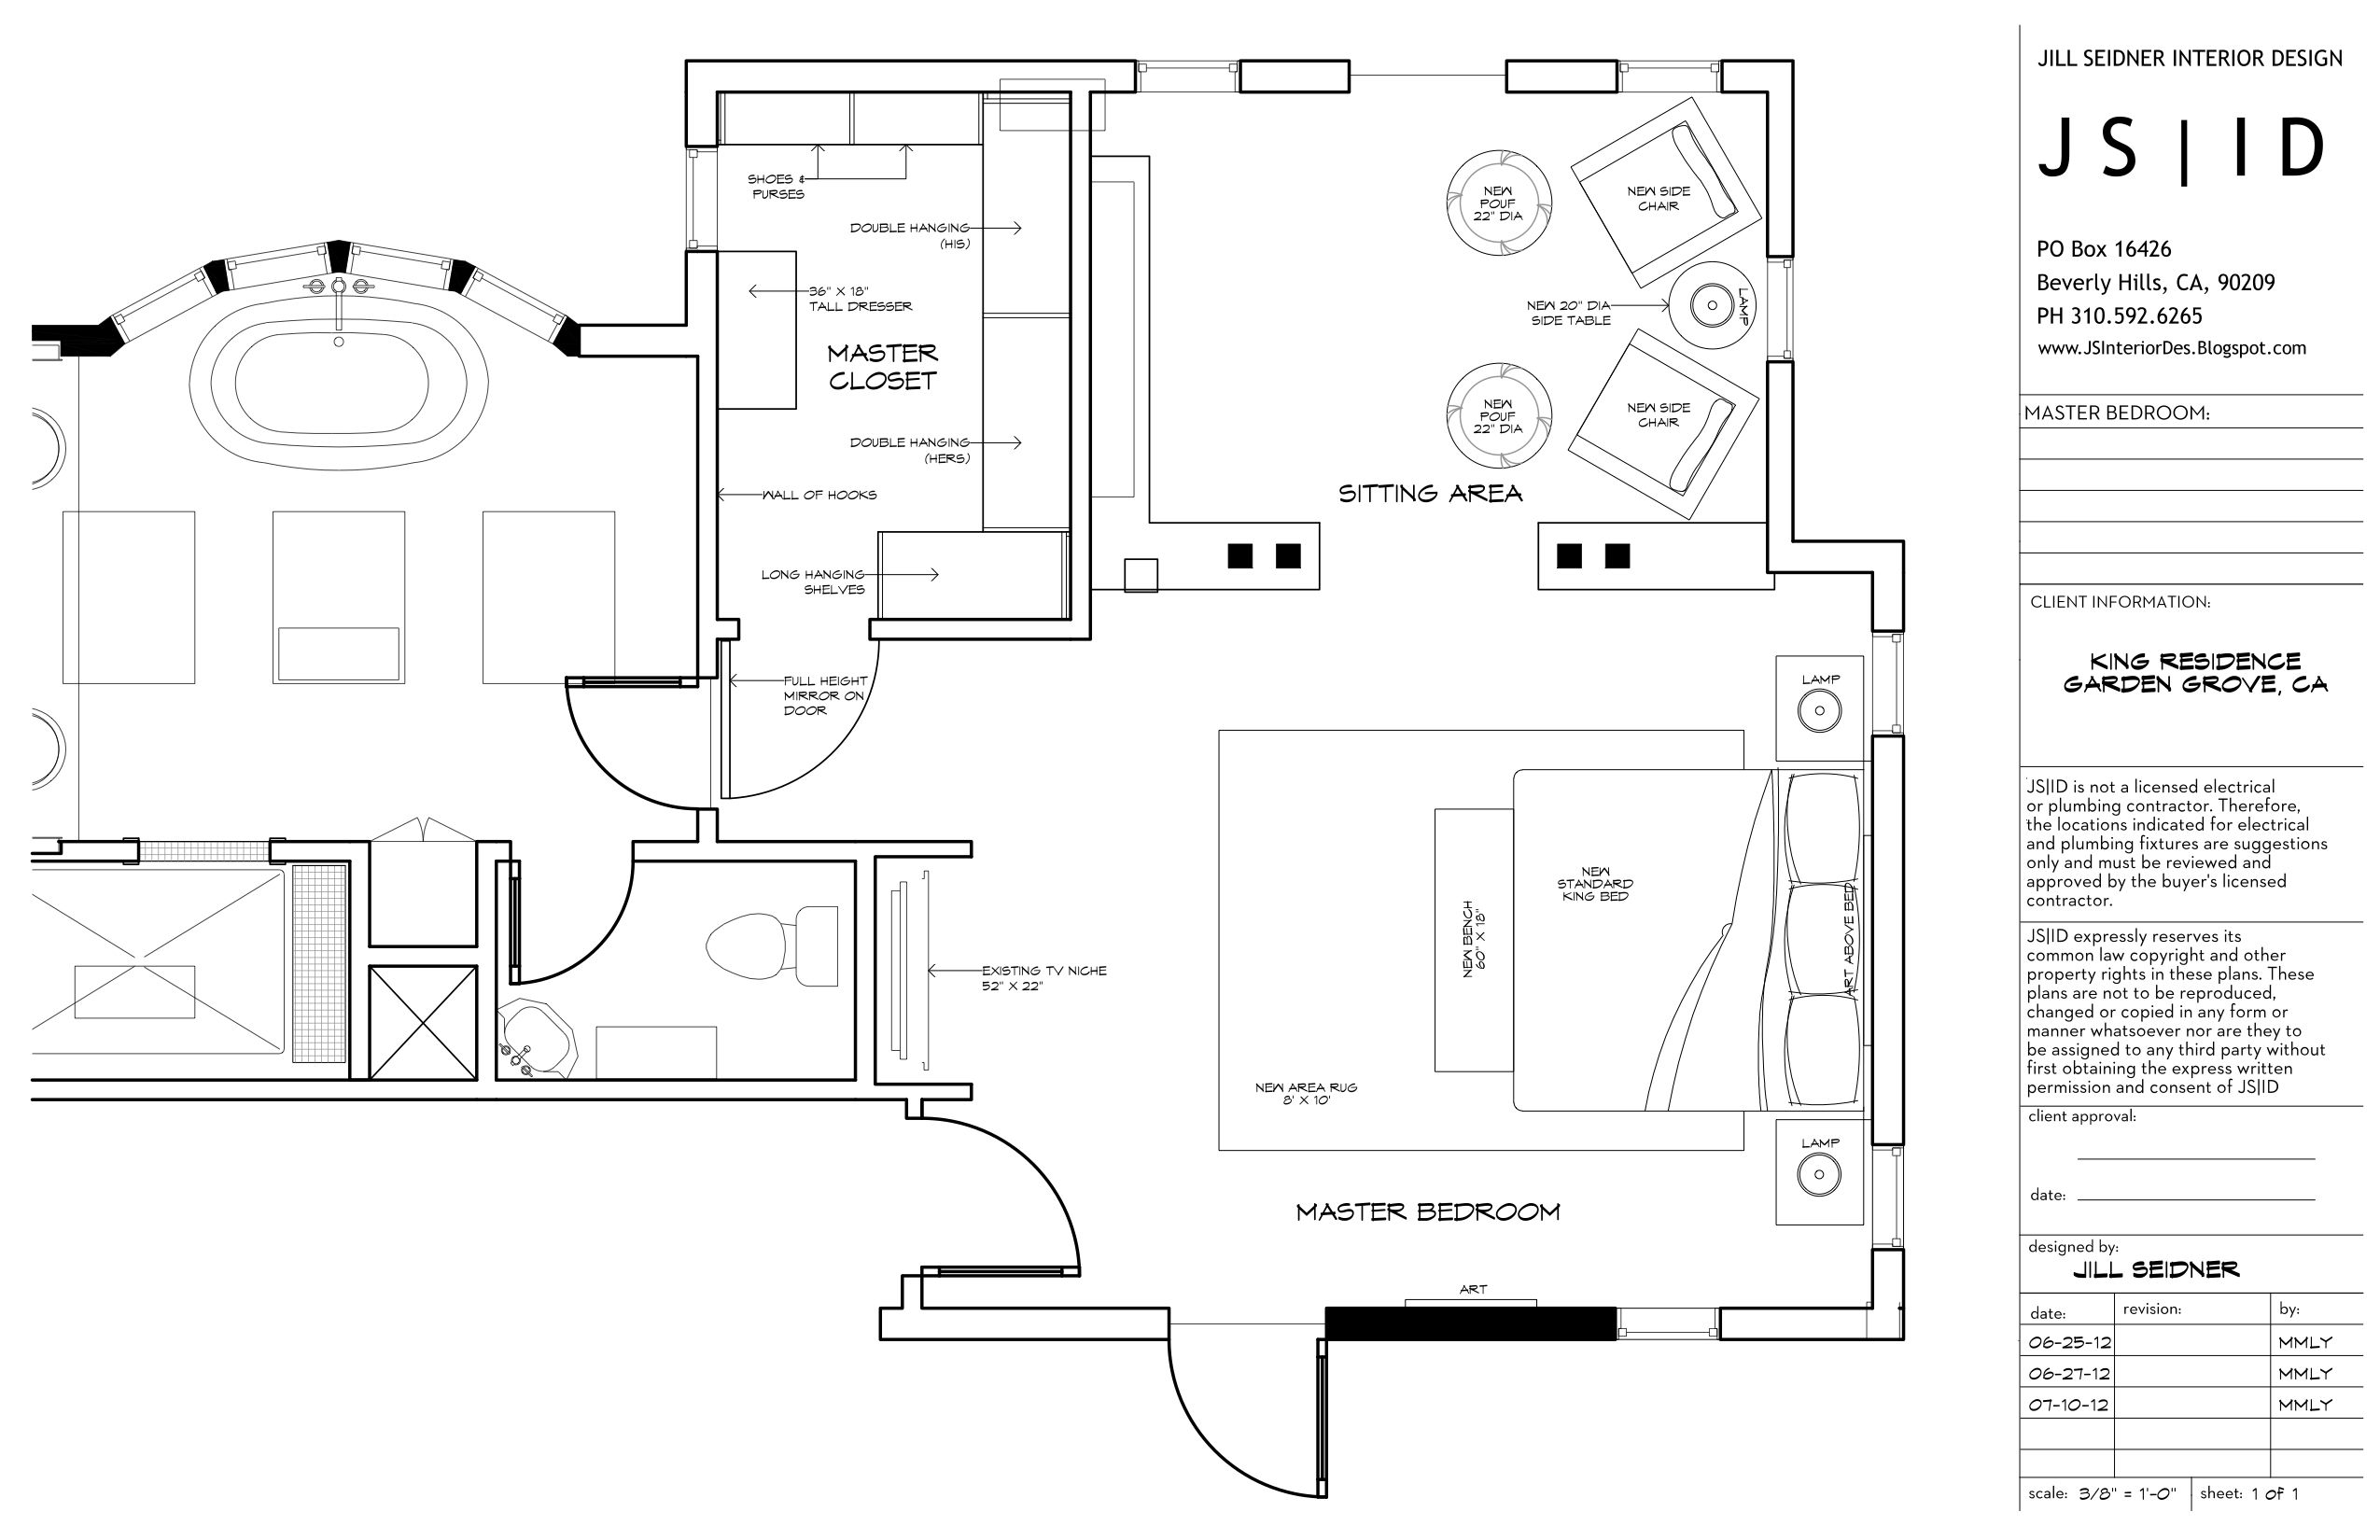 Plans For Bedroom Furniture Garden Grove Ca Residence Master Bedroom Furniture Floor Plan